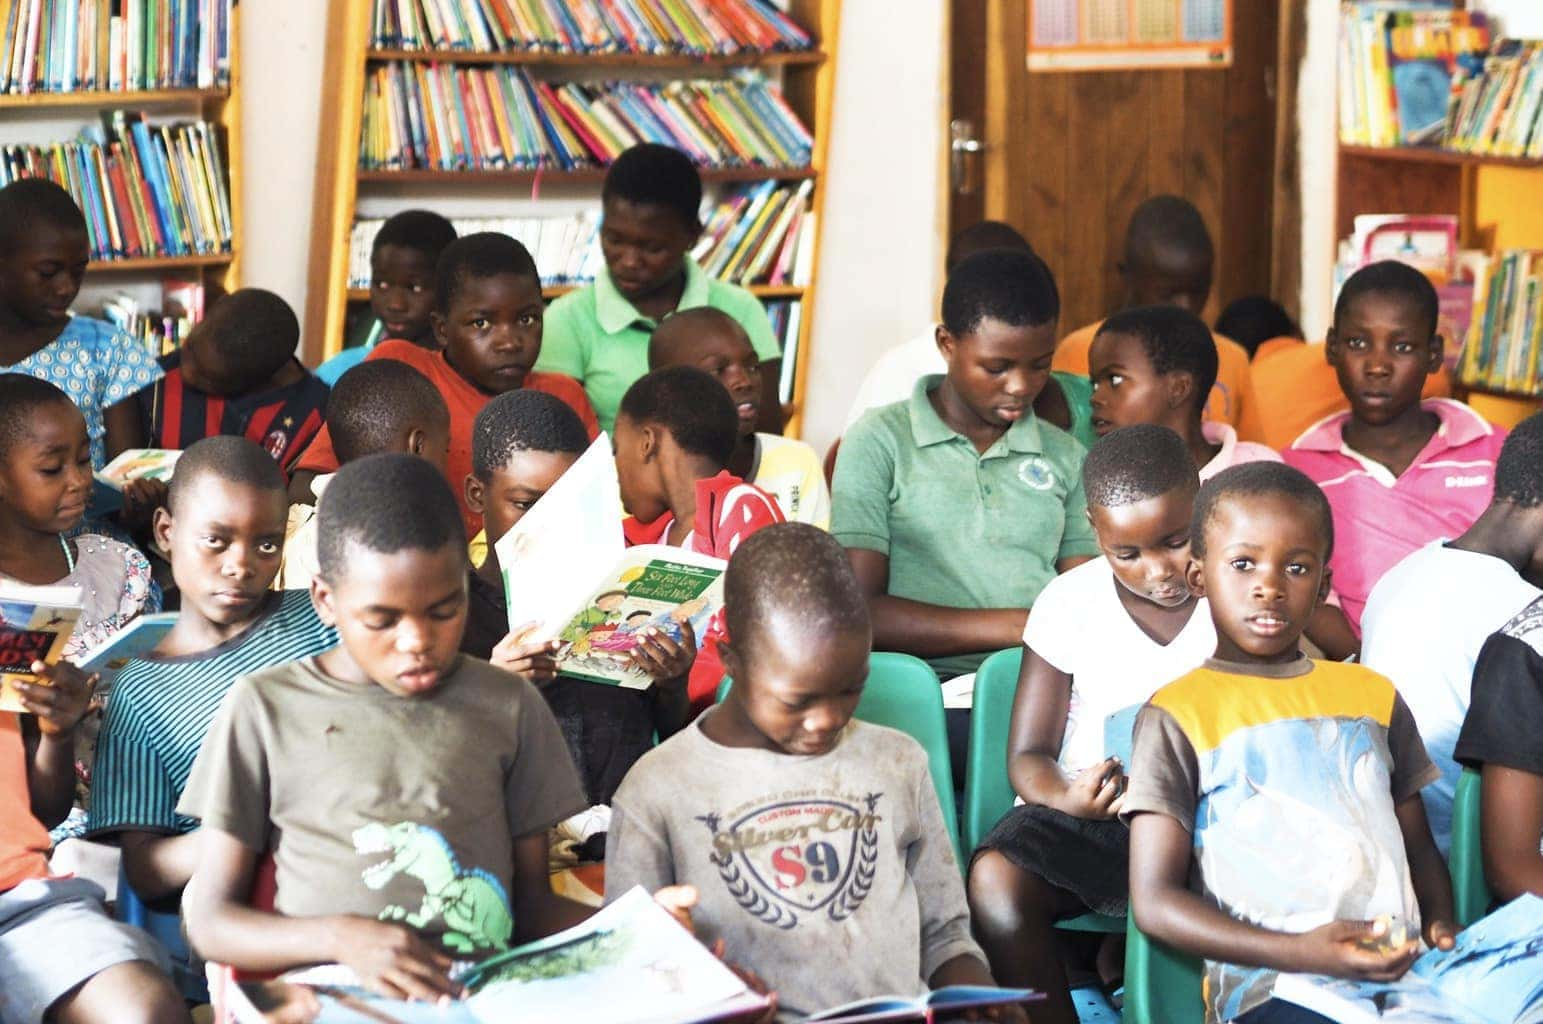 The Book Bus | Malawi Family Travel